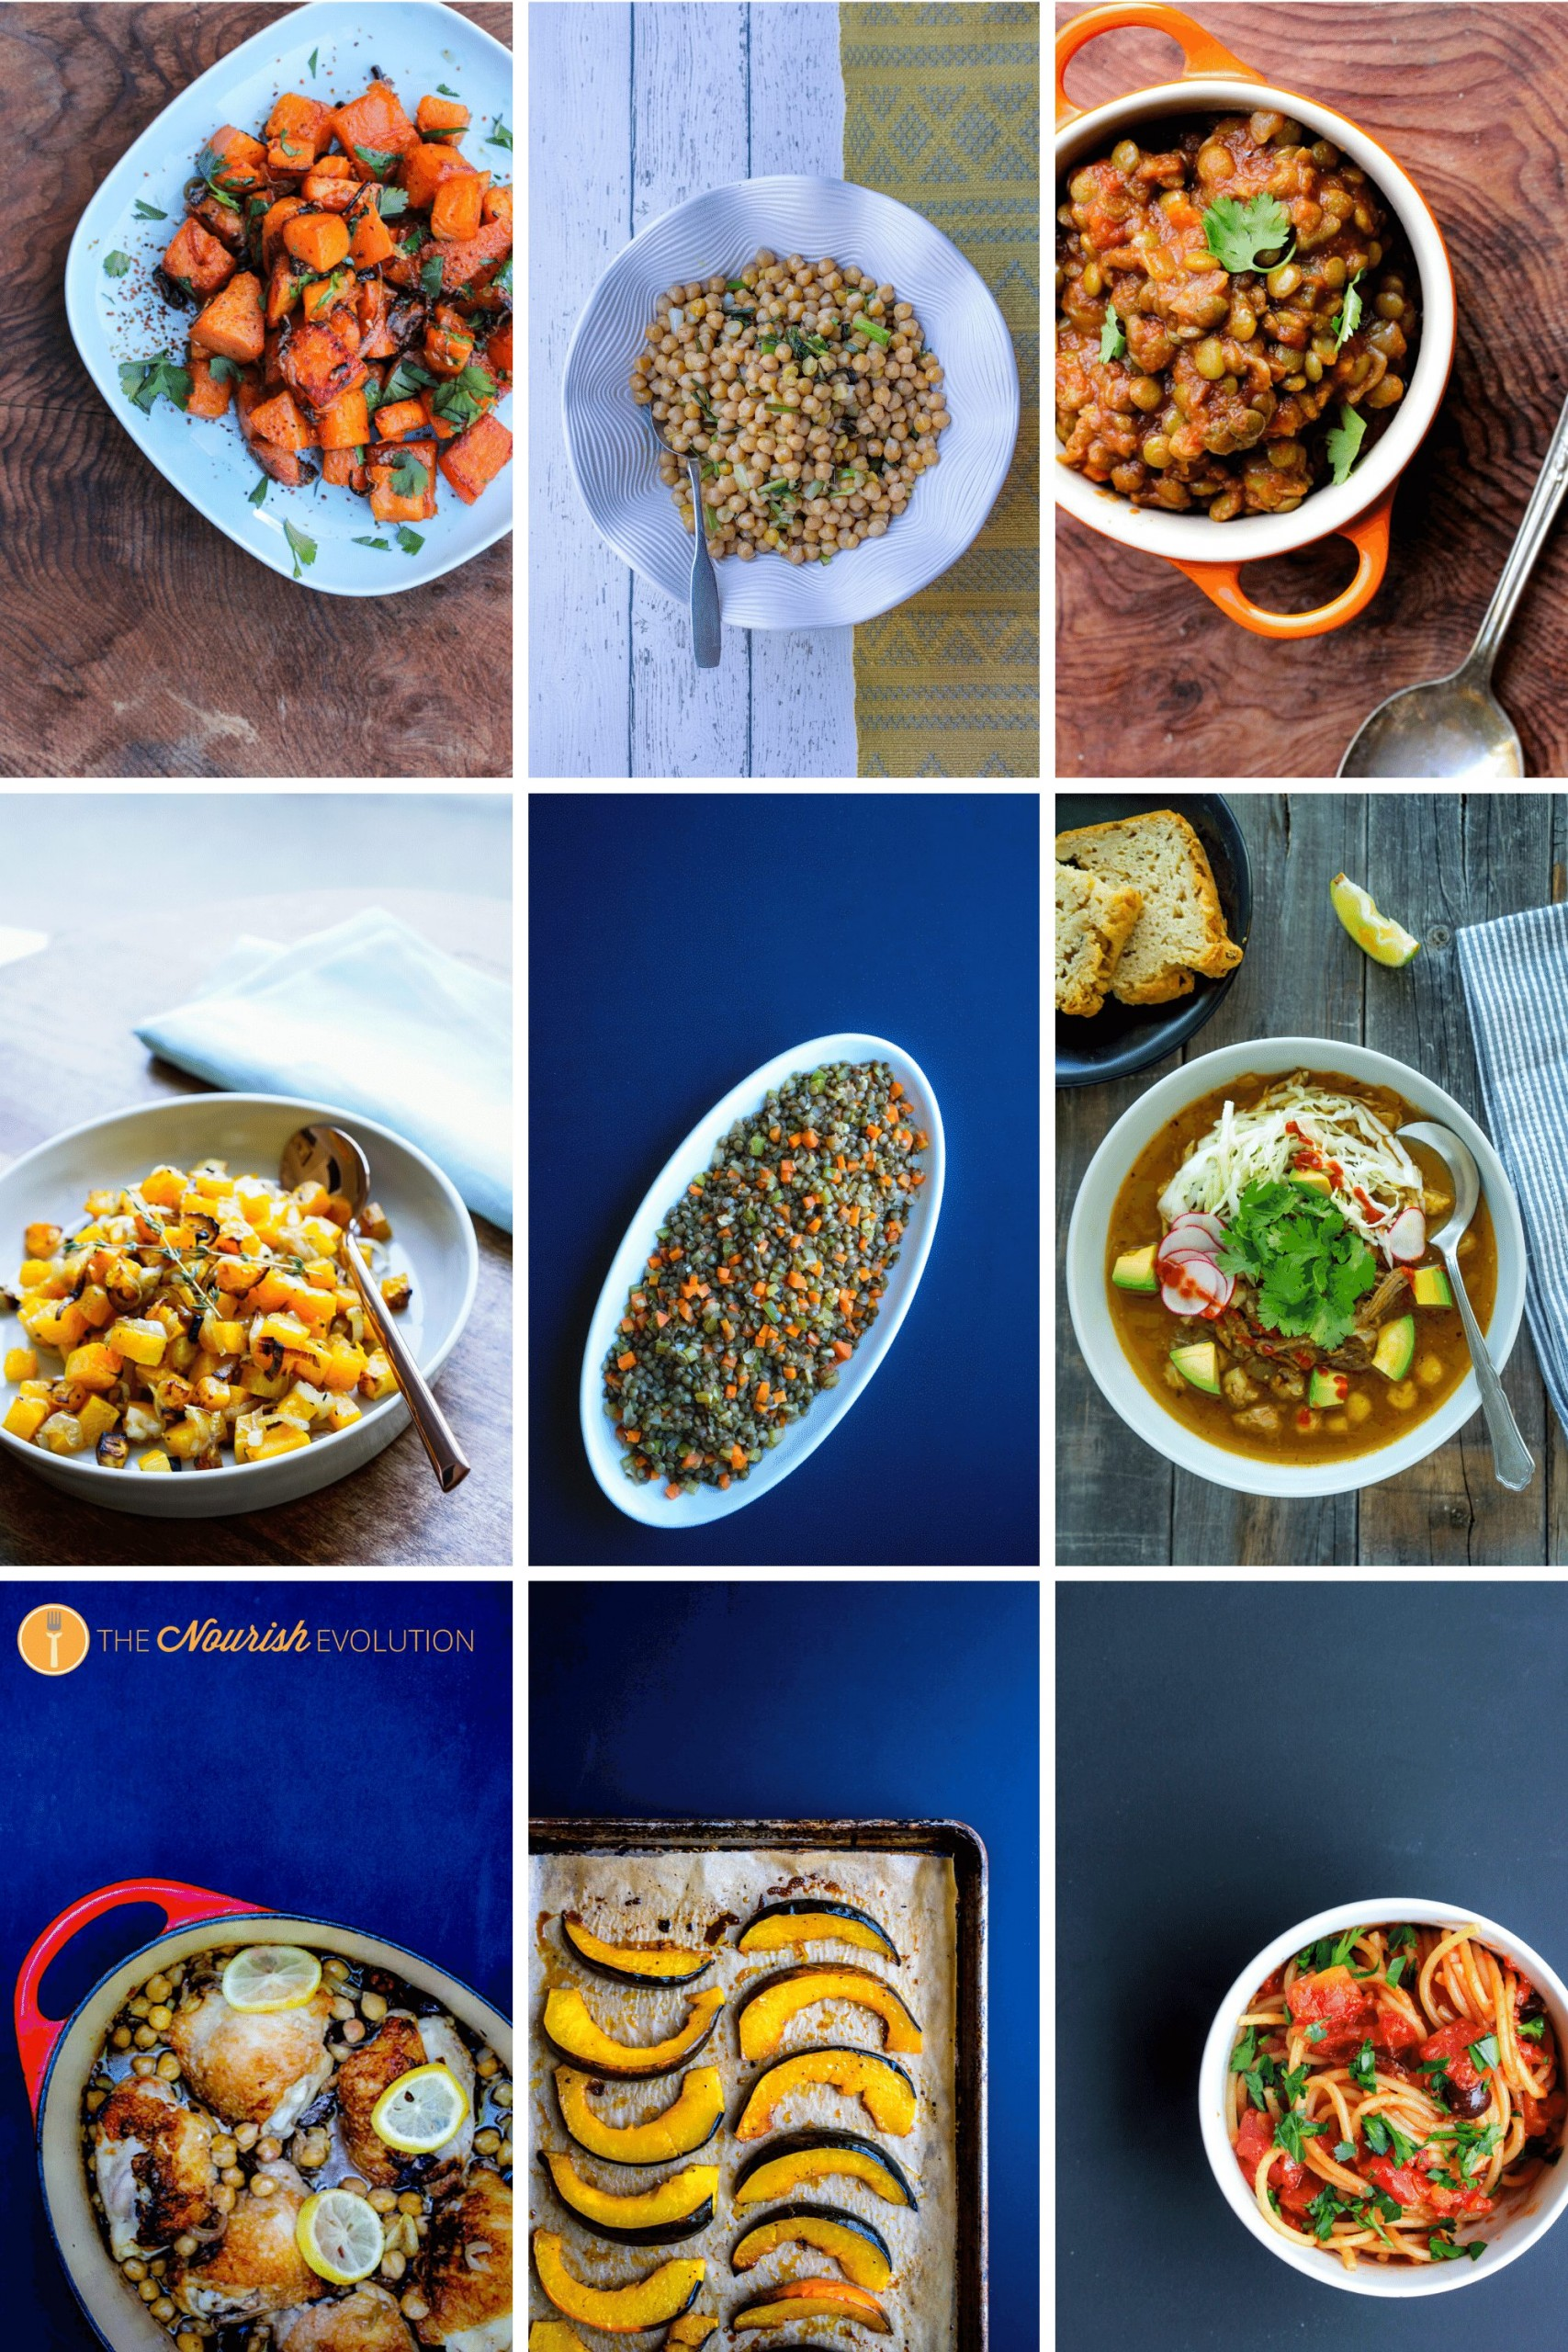 24 Nourishing Recipes to Freeze In Case of a Coronavirus Lockdown